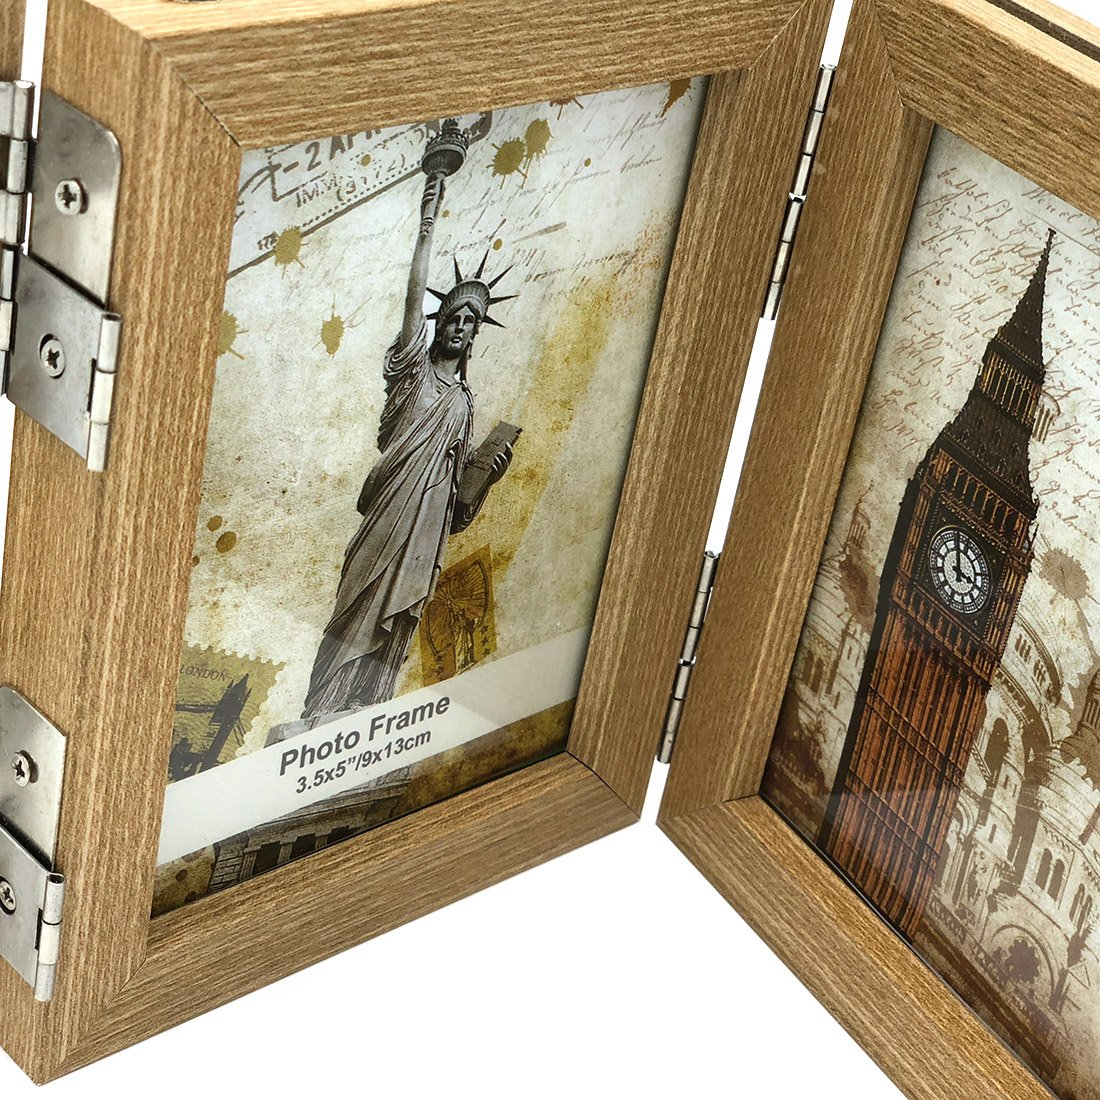 INEYMALL Wooden Photo Frame Folding 3 Stage Photo Frame With Glass 3.5x5 (beige) by INEYMALL (Image #3)